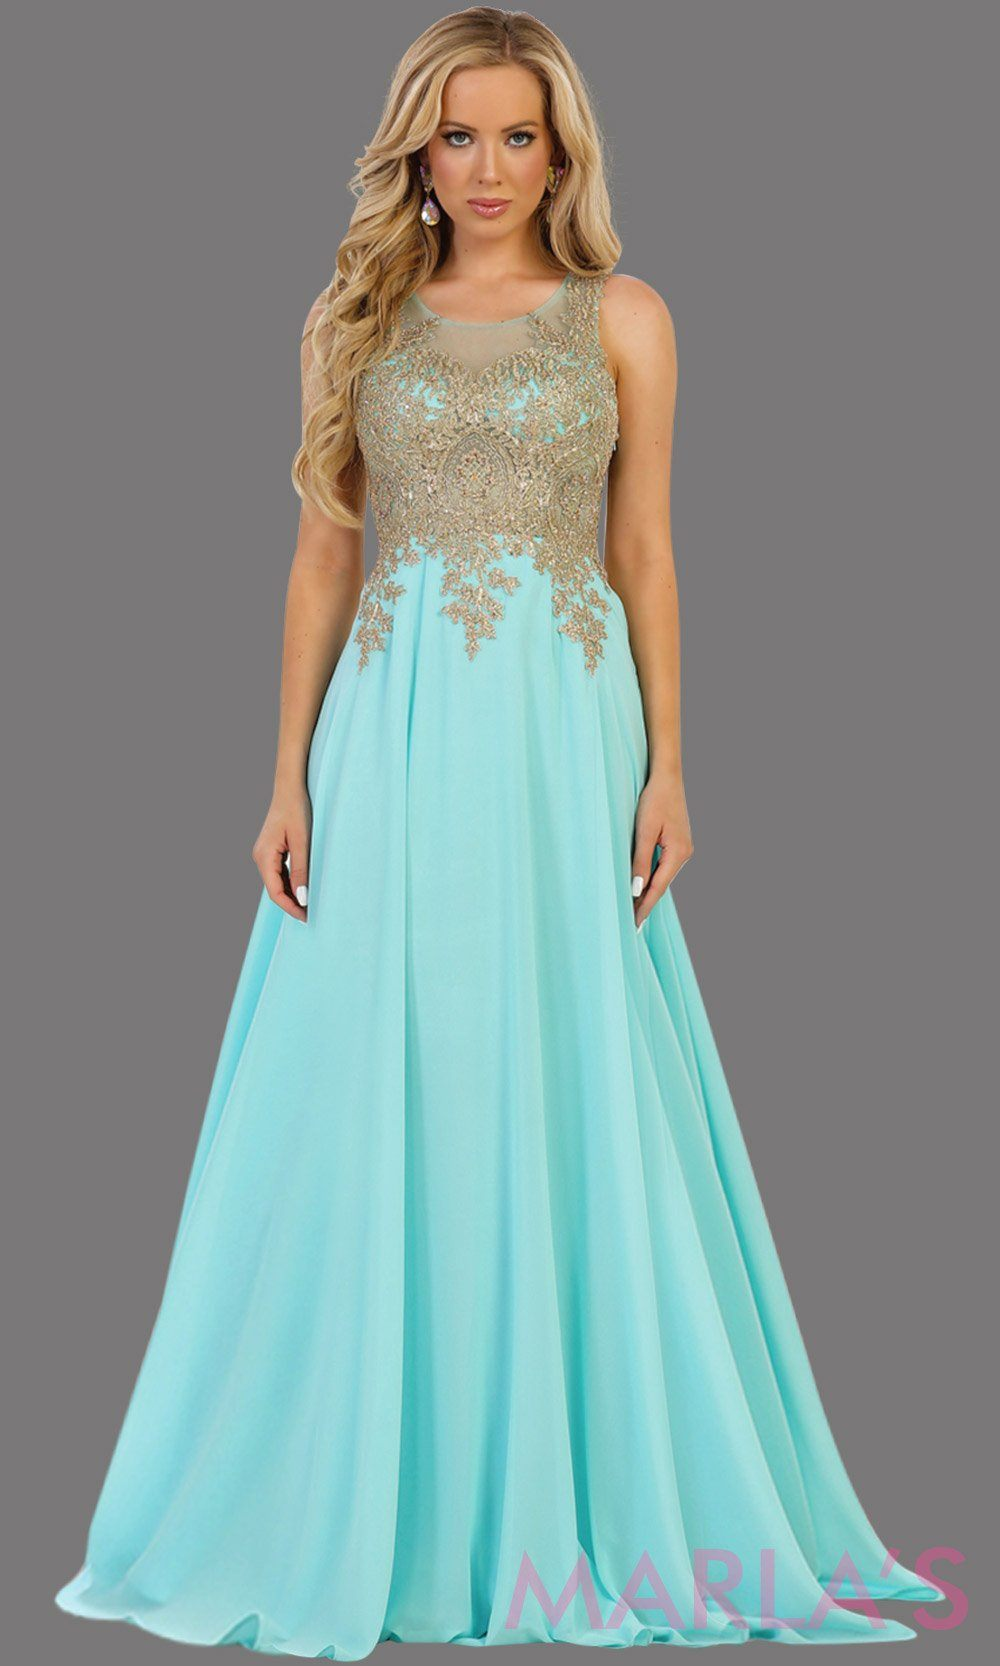 Long light blue evening dress with gold lace, sheer back and flowy skirt. This aqua blue gown is perfect for prom, gala, wedding guest, formal party dress, anniversary party, evening dress. Available in plus sizes.